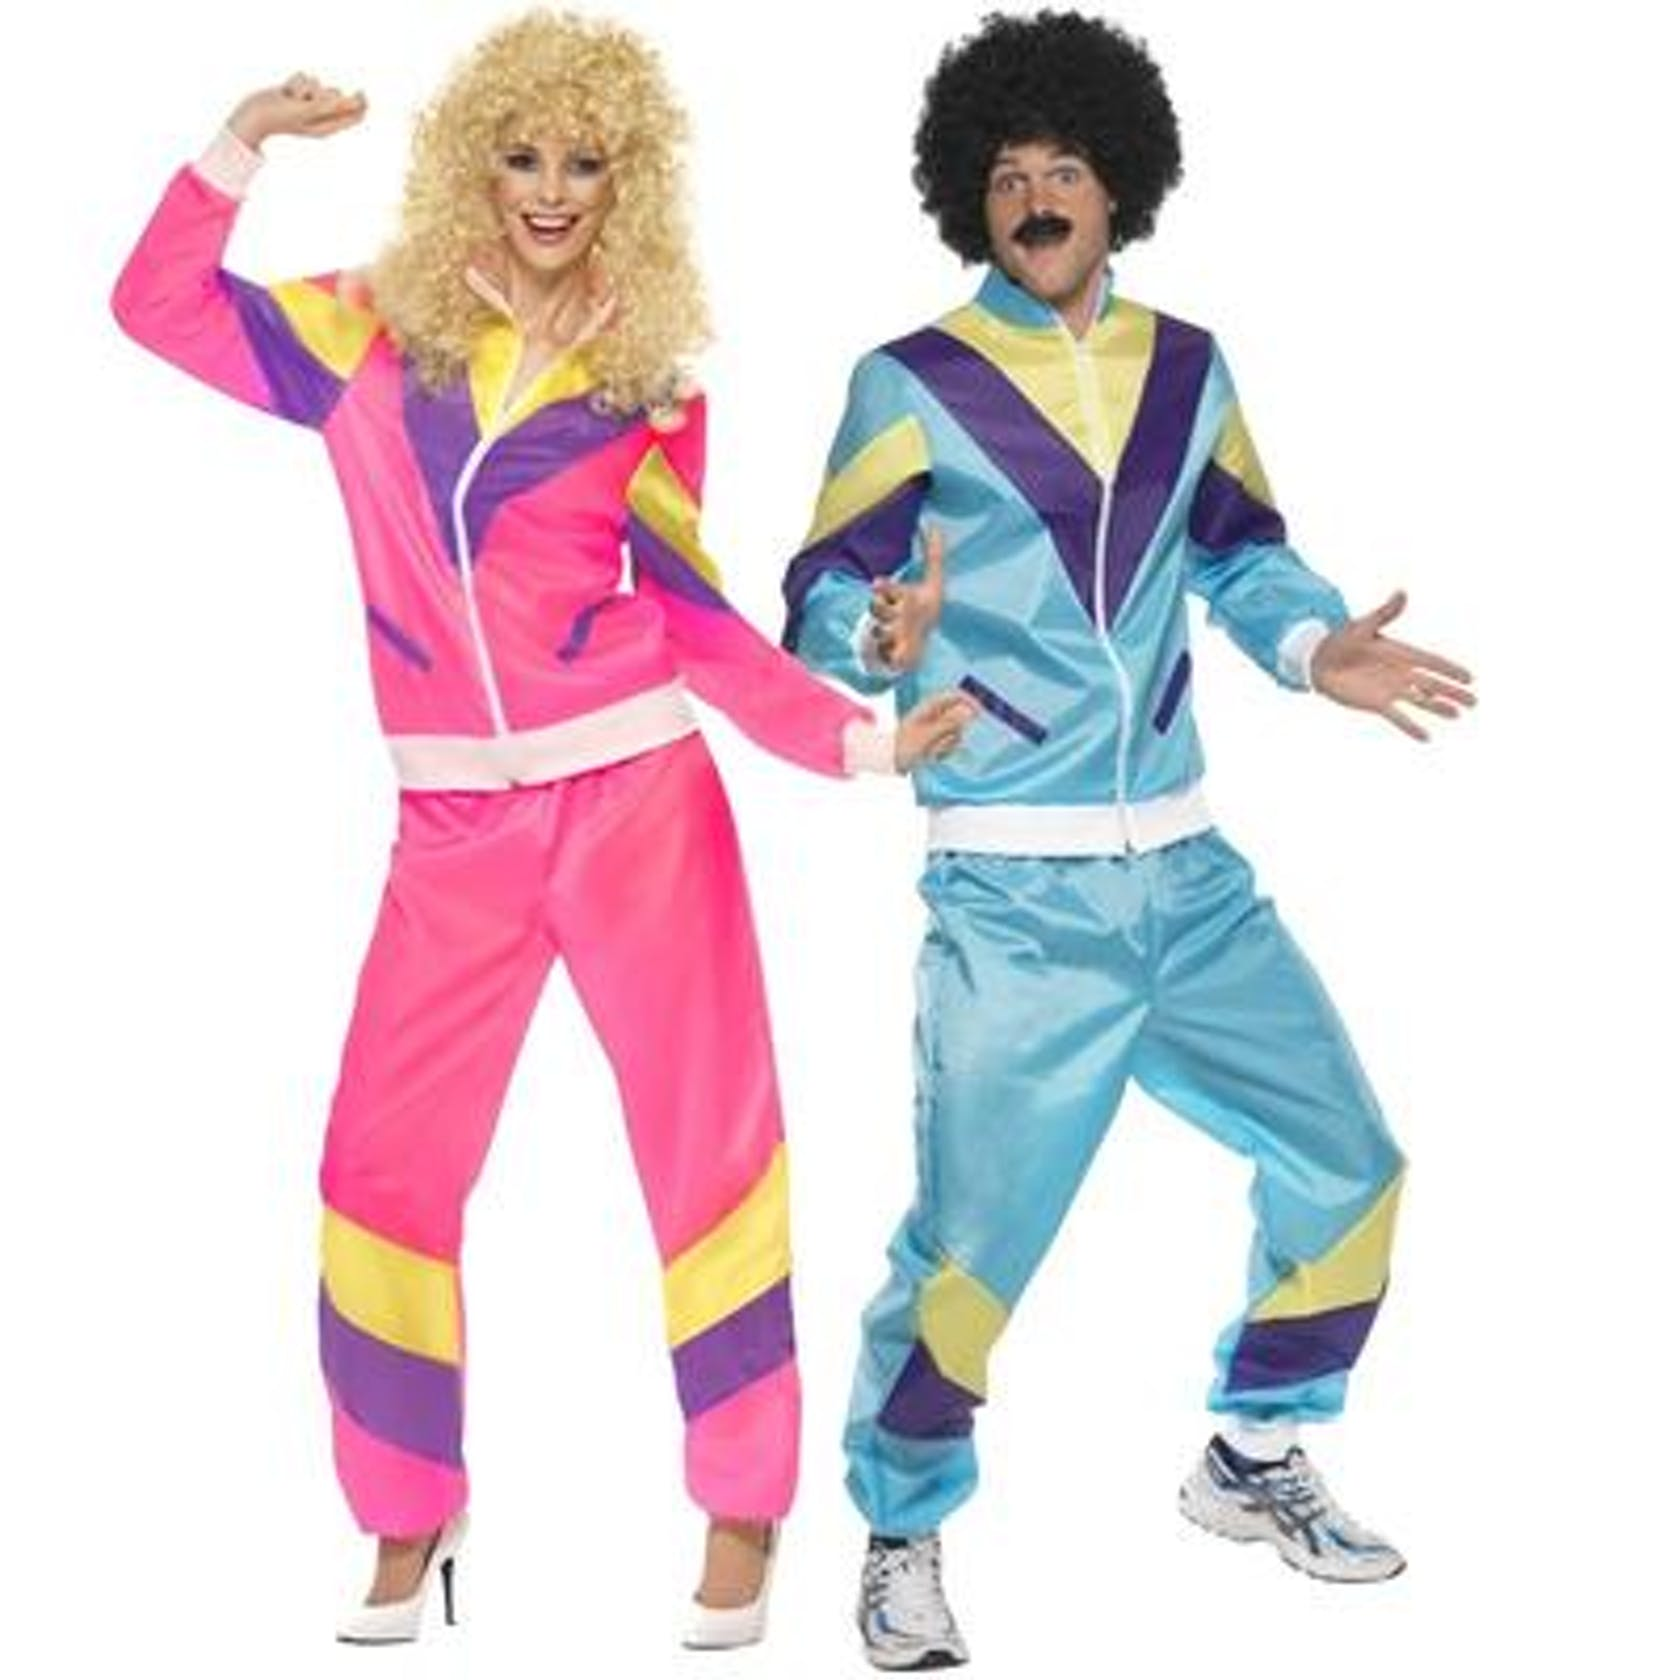 Shows couple dressed in 1980's outfits